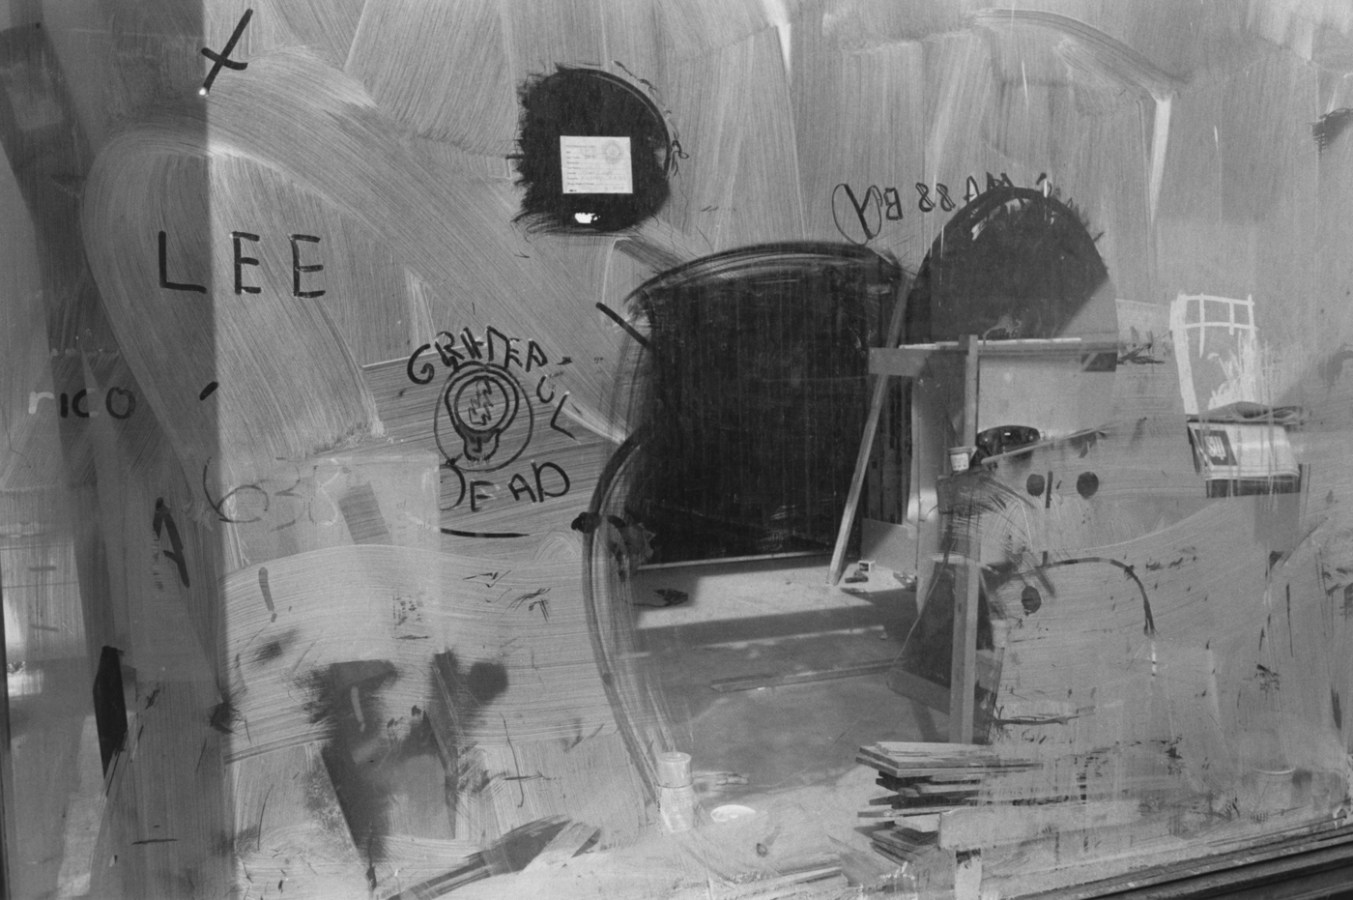 Black and white photograph of a storefront window with graffiti